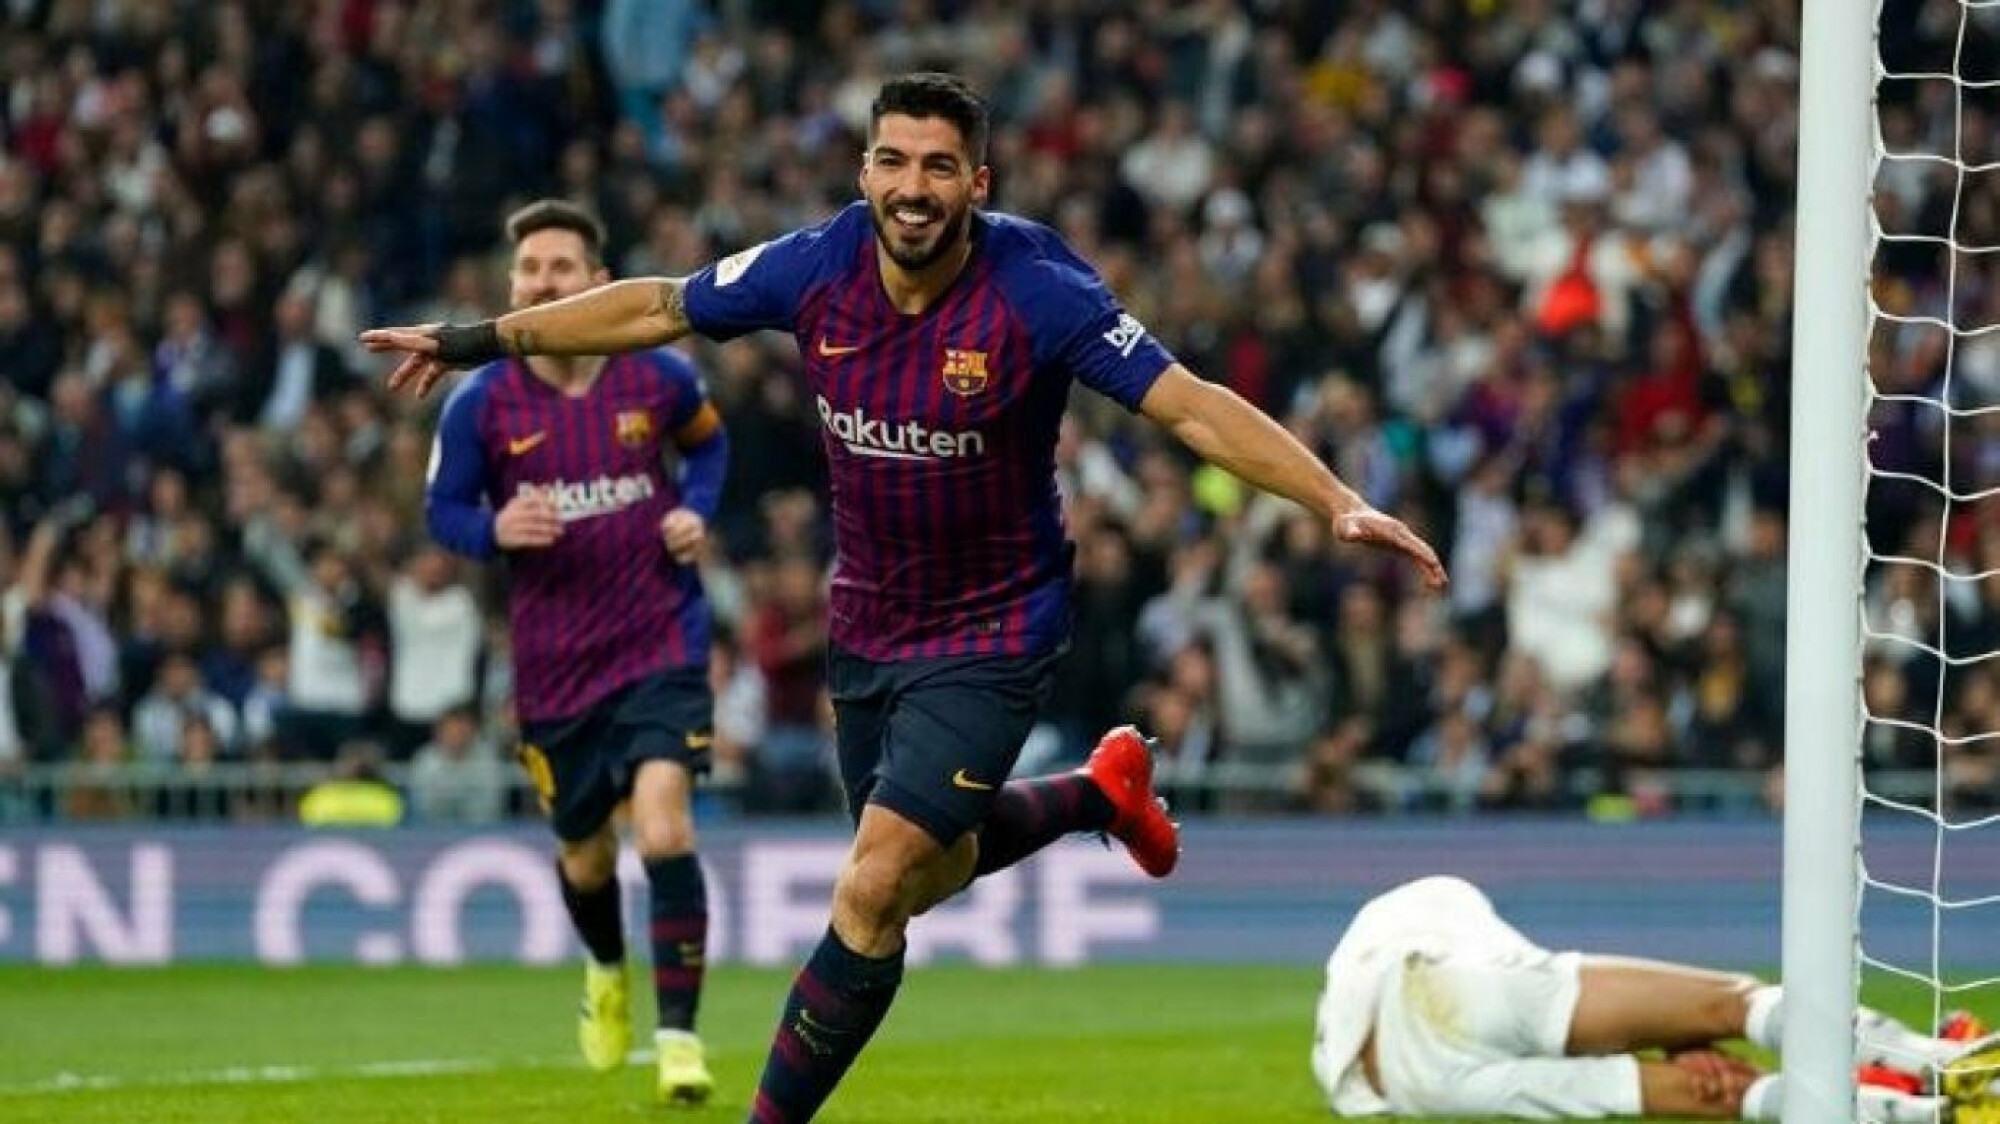 Luis Suarez, the king of El Clasico, dismantles Real Madrid at the Bernabeu